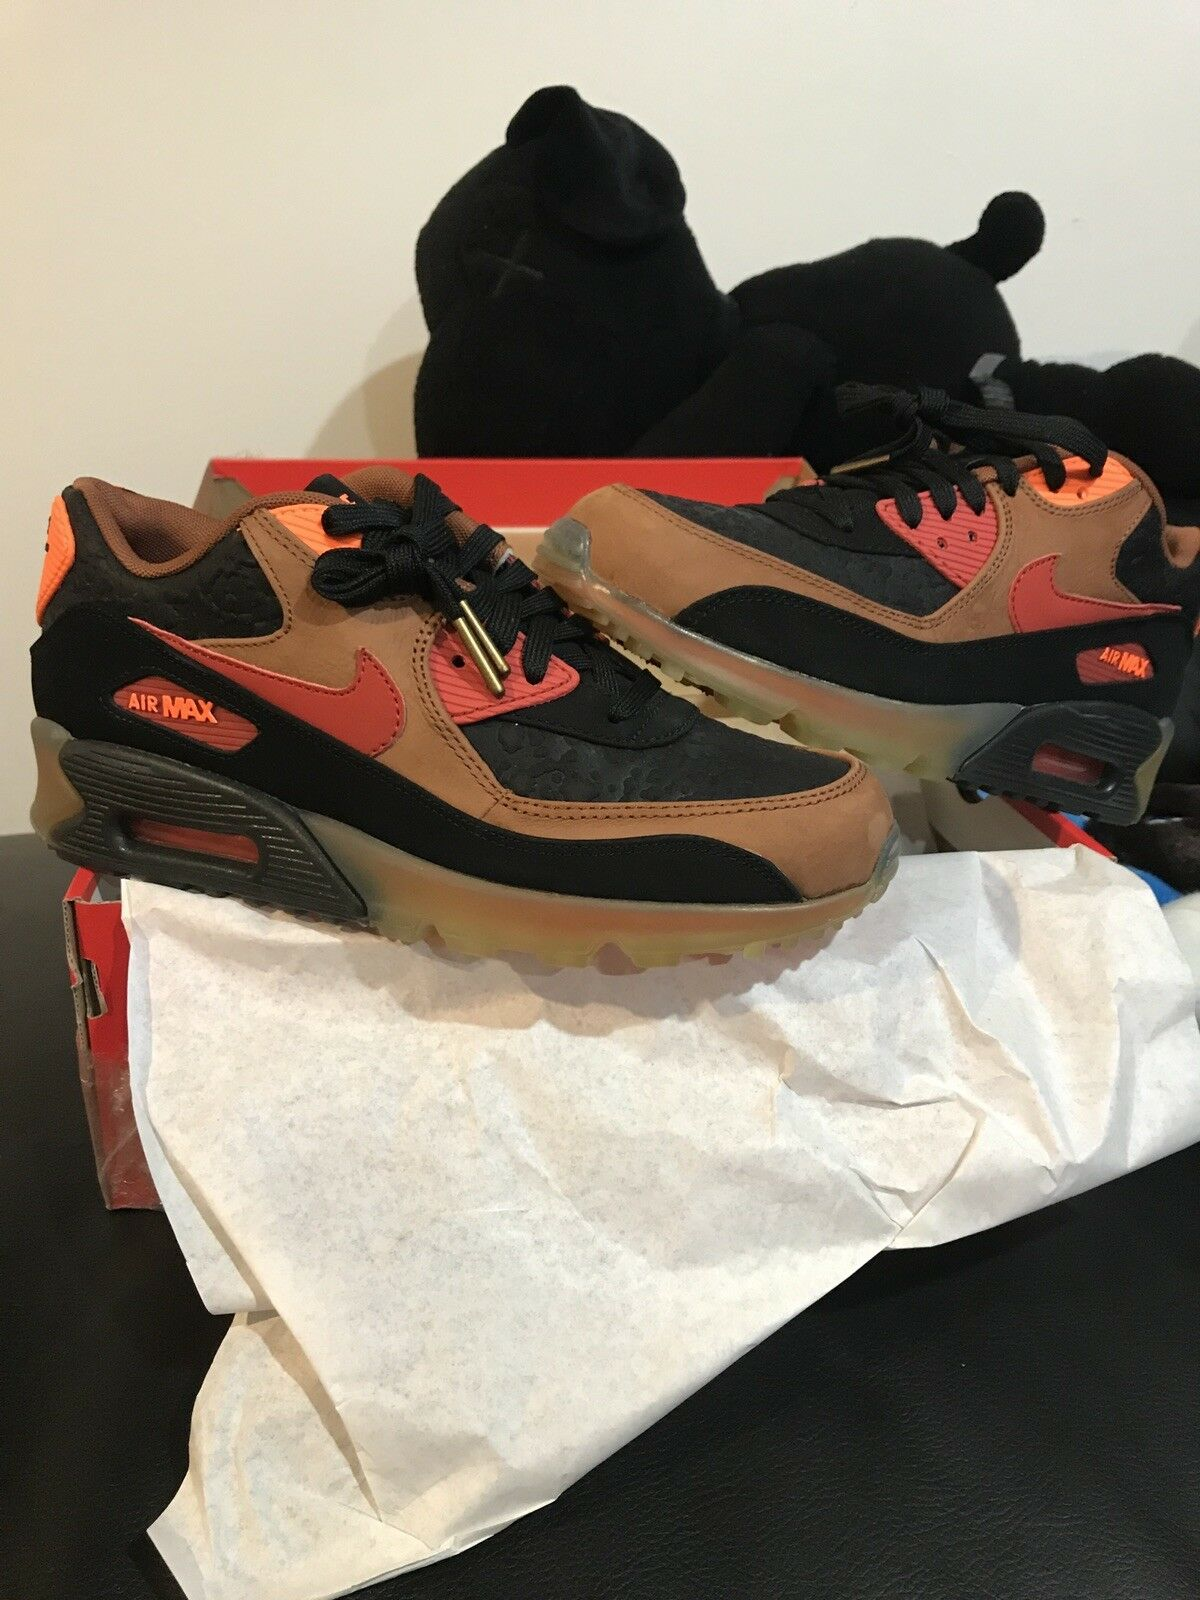 Nike Air Max 90 HW QS Halloween Quickstrike Size 7 Men's-717942 006 Black Cognac